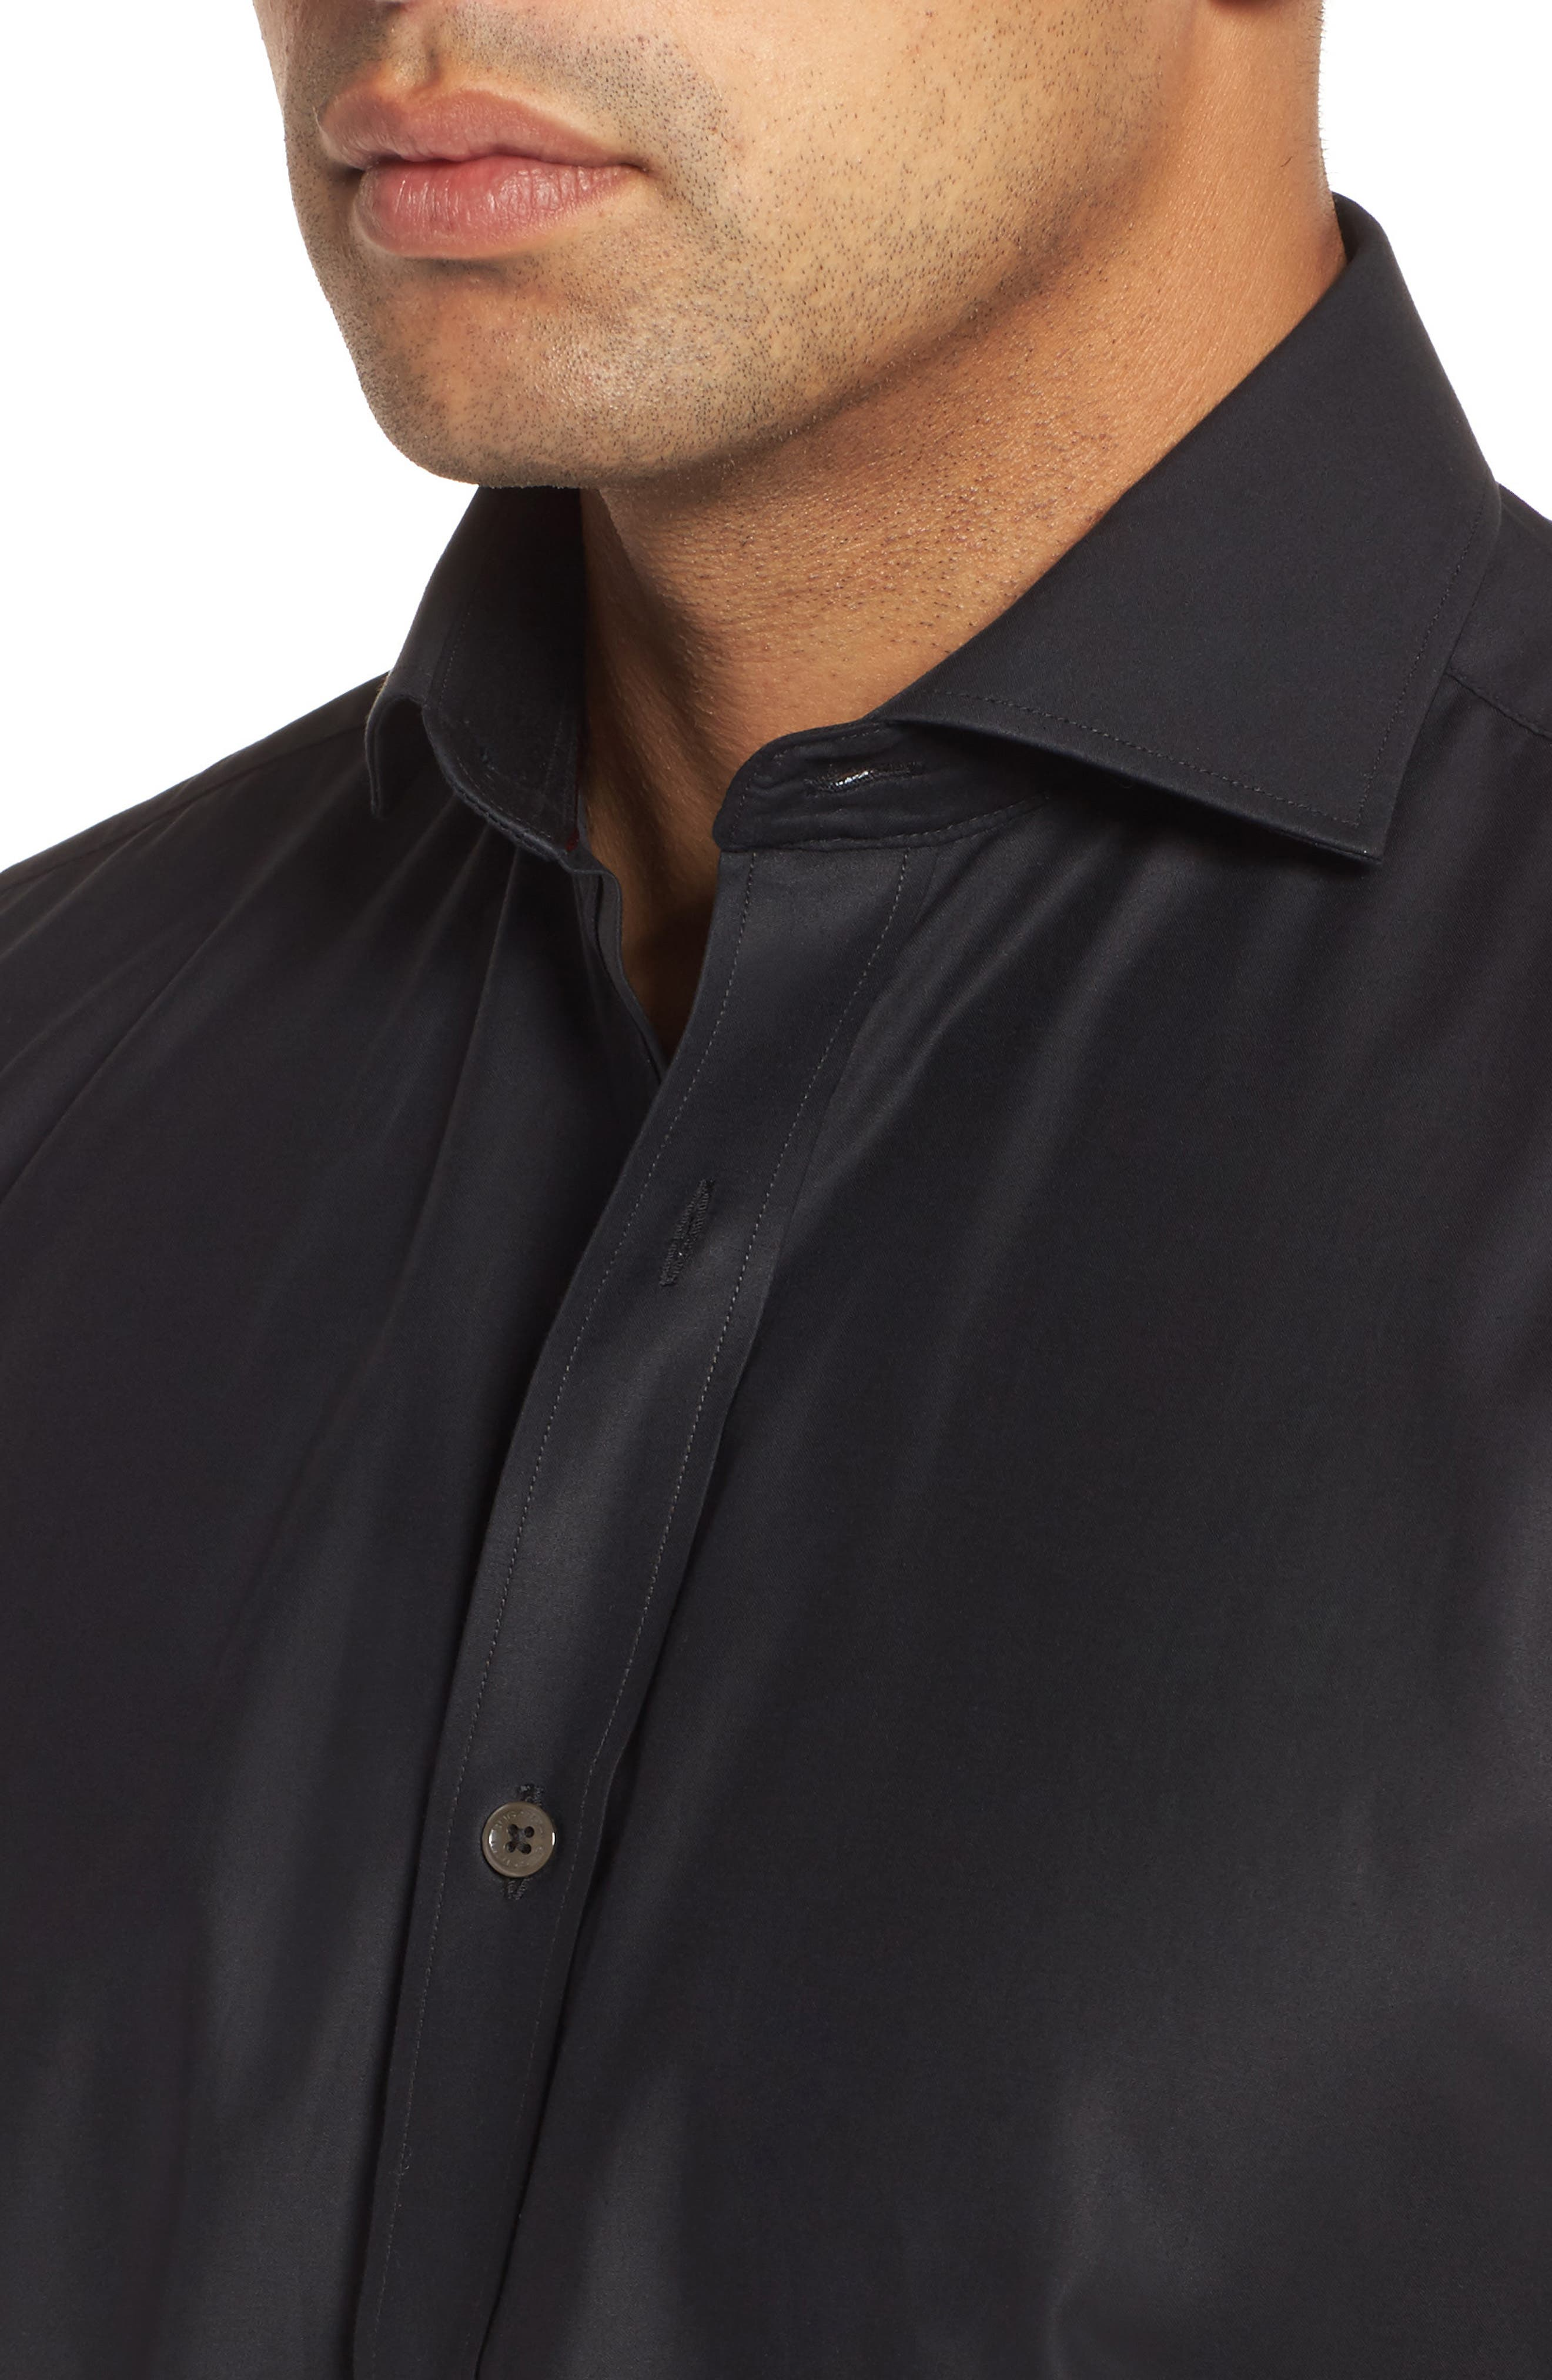 Classic Fit Solid Mercerized Cotton Sport Shirt,                             Alternate thumbnail 4, color,                             001